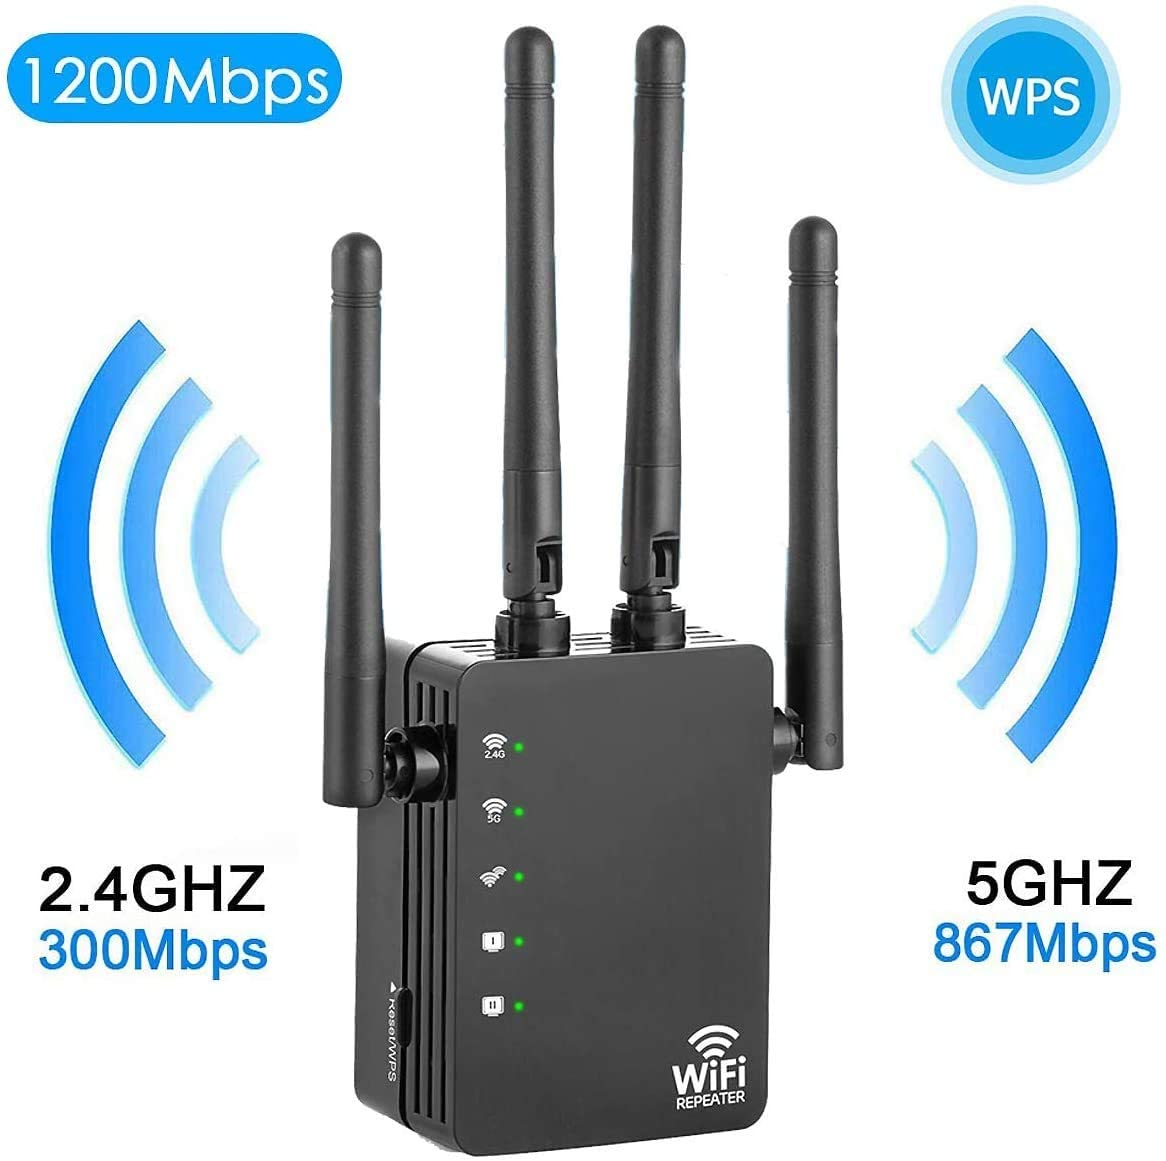 WiFi Range Extender - 1200Mbps WiFi Repeater Wireless Signal Booster, 2.4 & 5GHz Dual Band WPS WiFi Extender Signal Amplifier with Ethernet Port 4 Antennas - Simple Setup (Black)